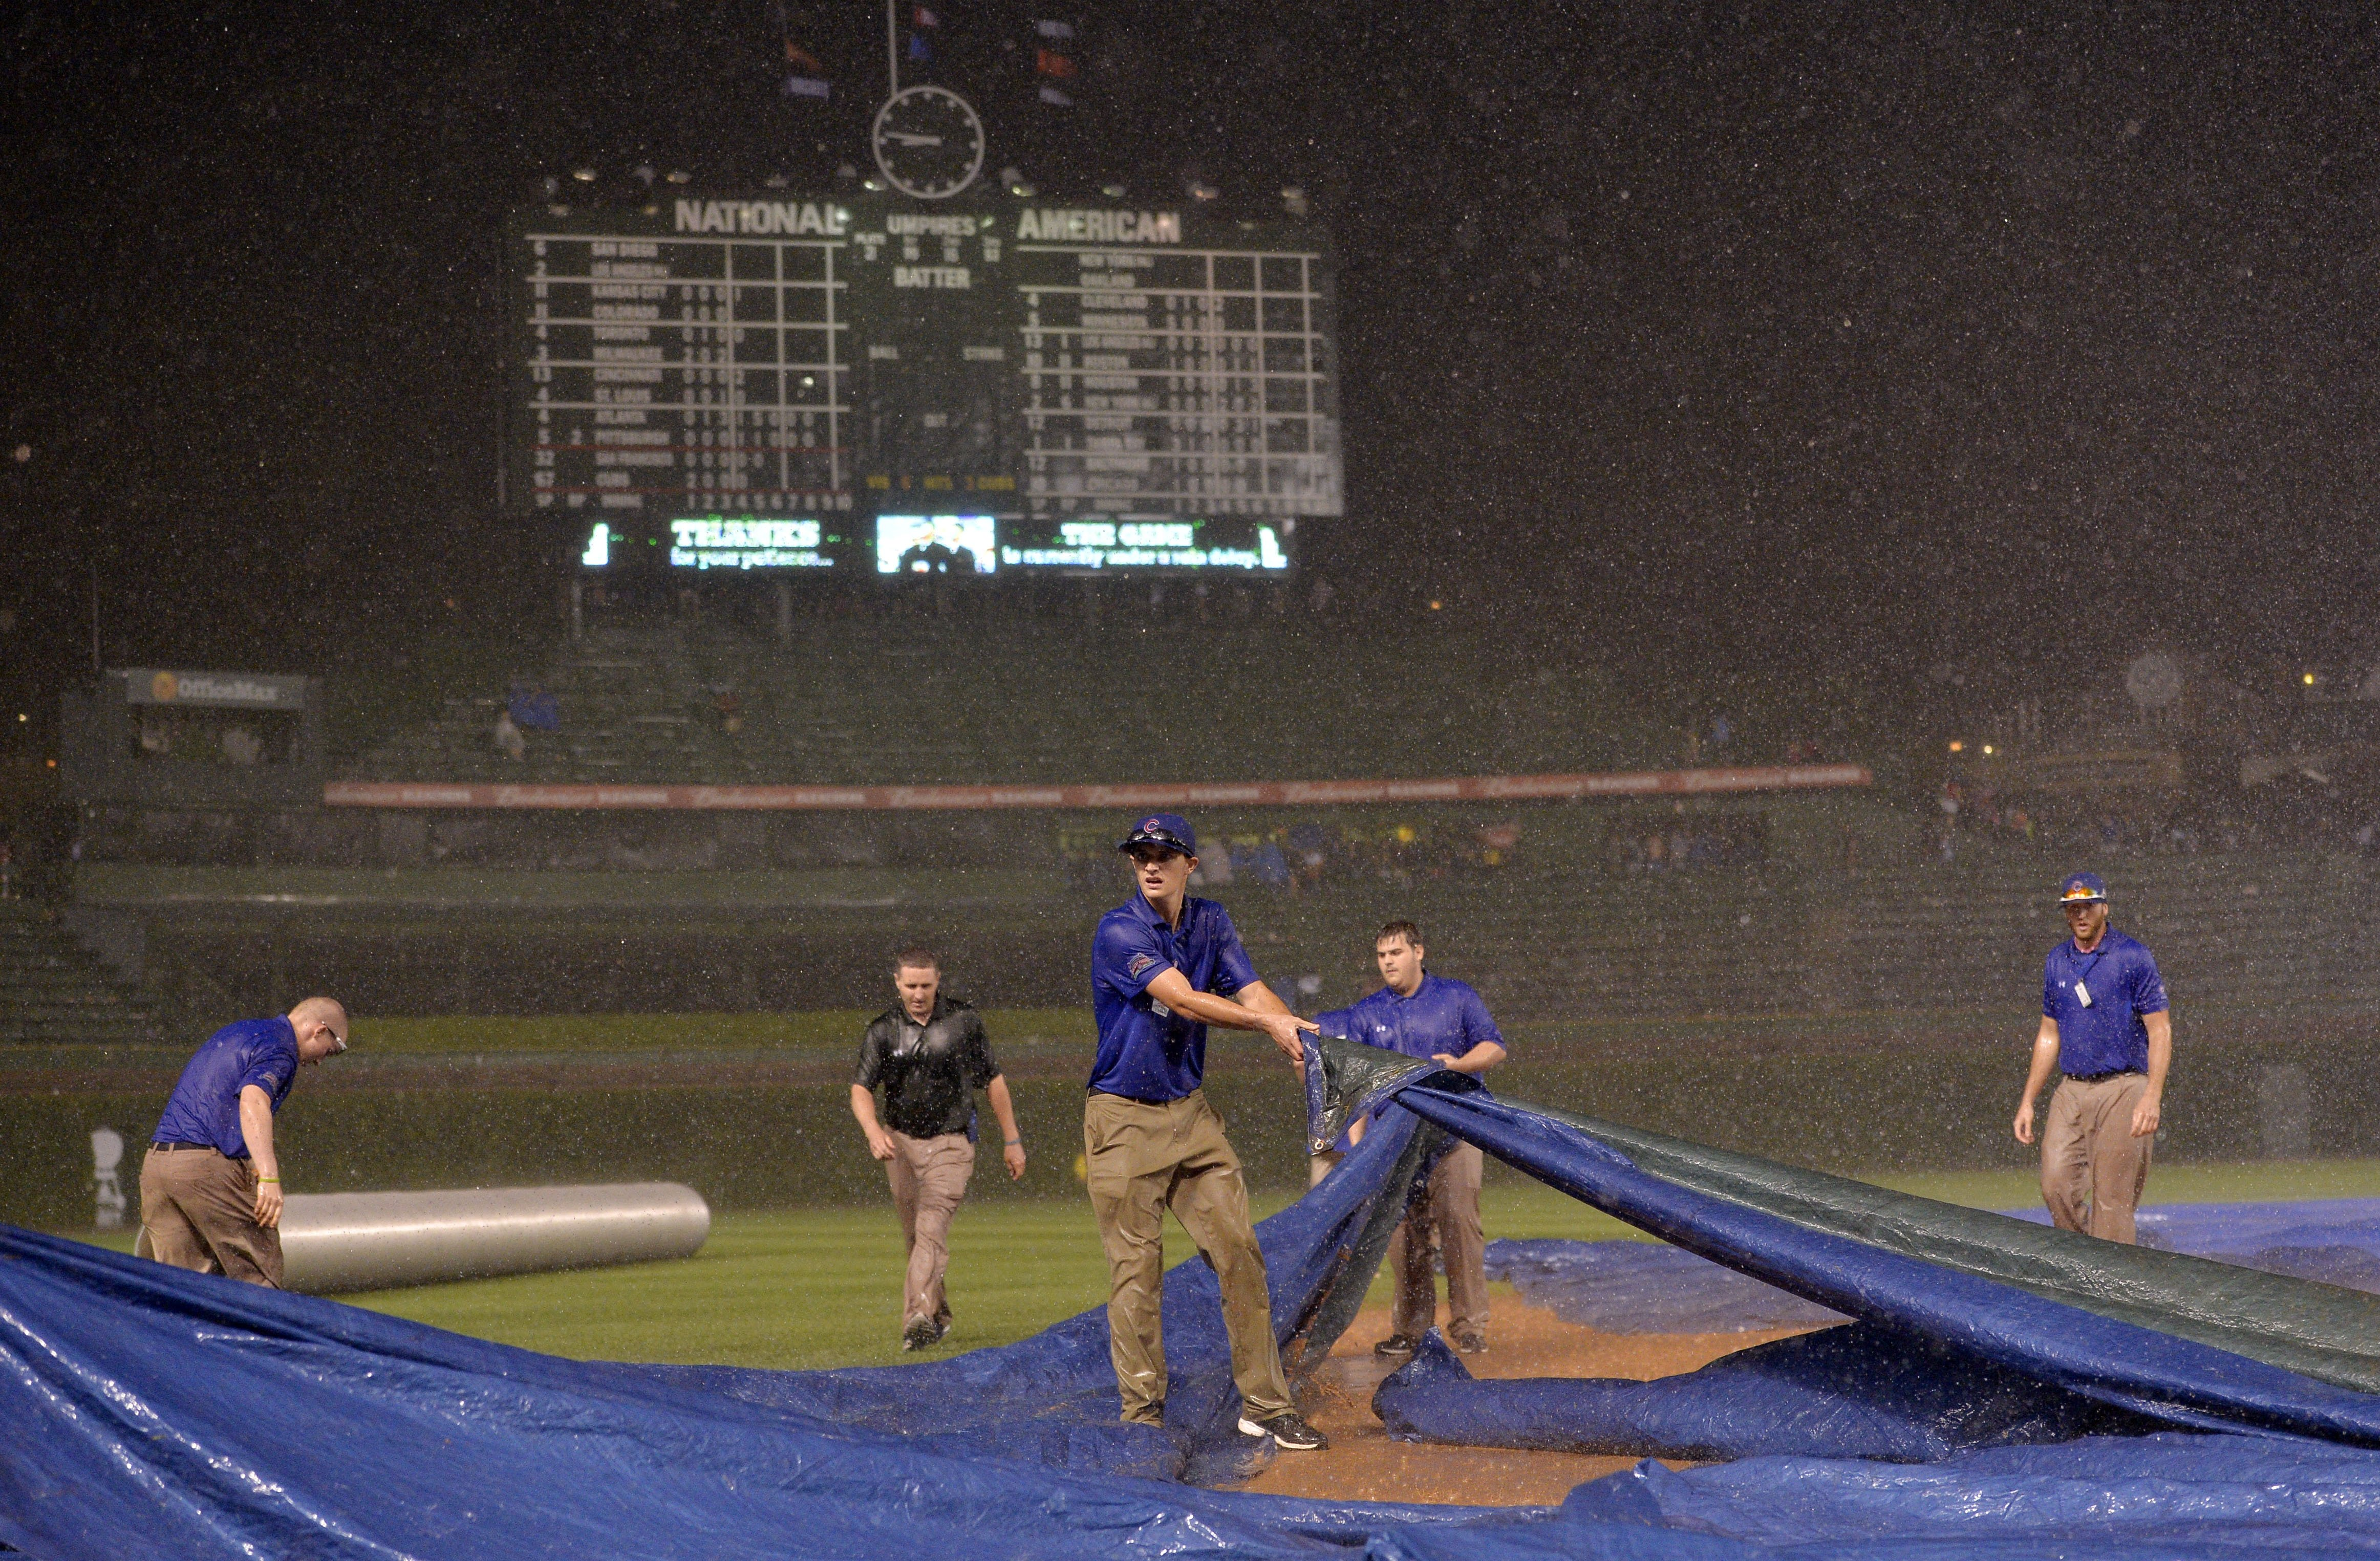 Chicago Cubs ground crew members struggle to get the tarp on the field as rain falls during the fifth inning of the Chicago Cubs game against the San Francisco Giants at Wrigley Field on August 19, 2014 in Chicago.